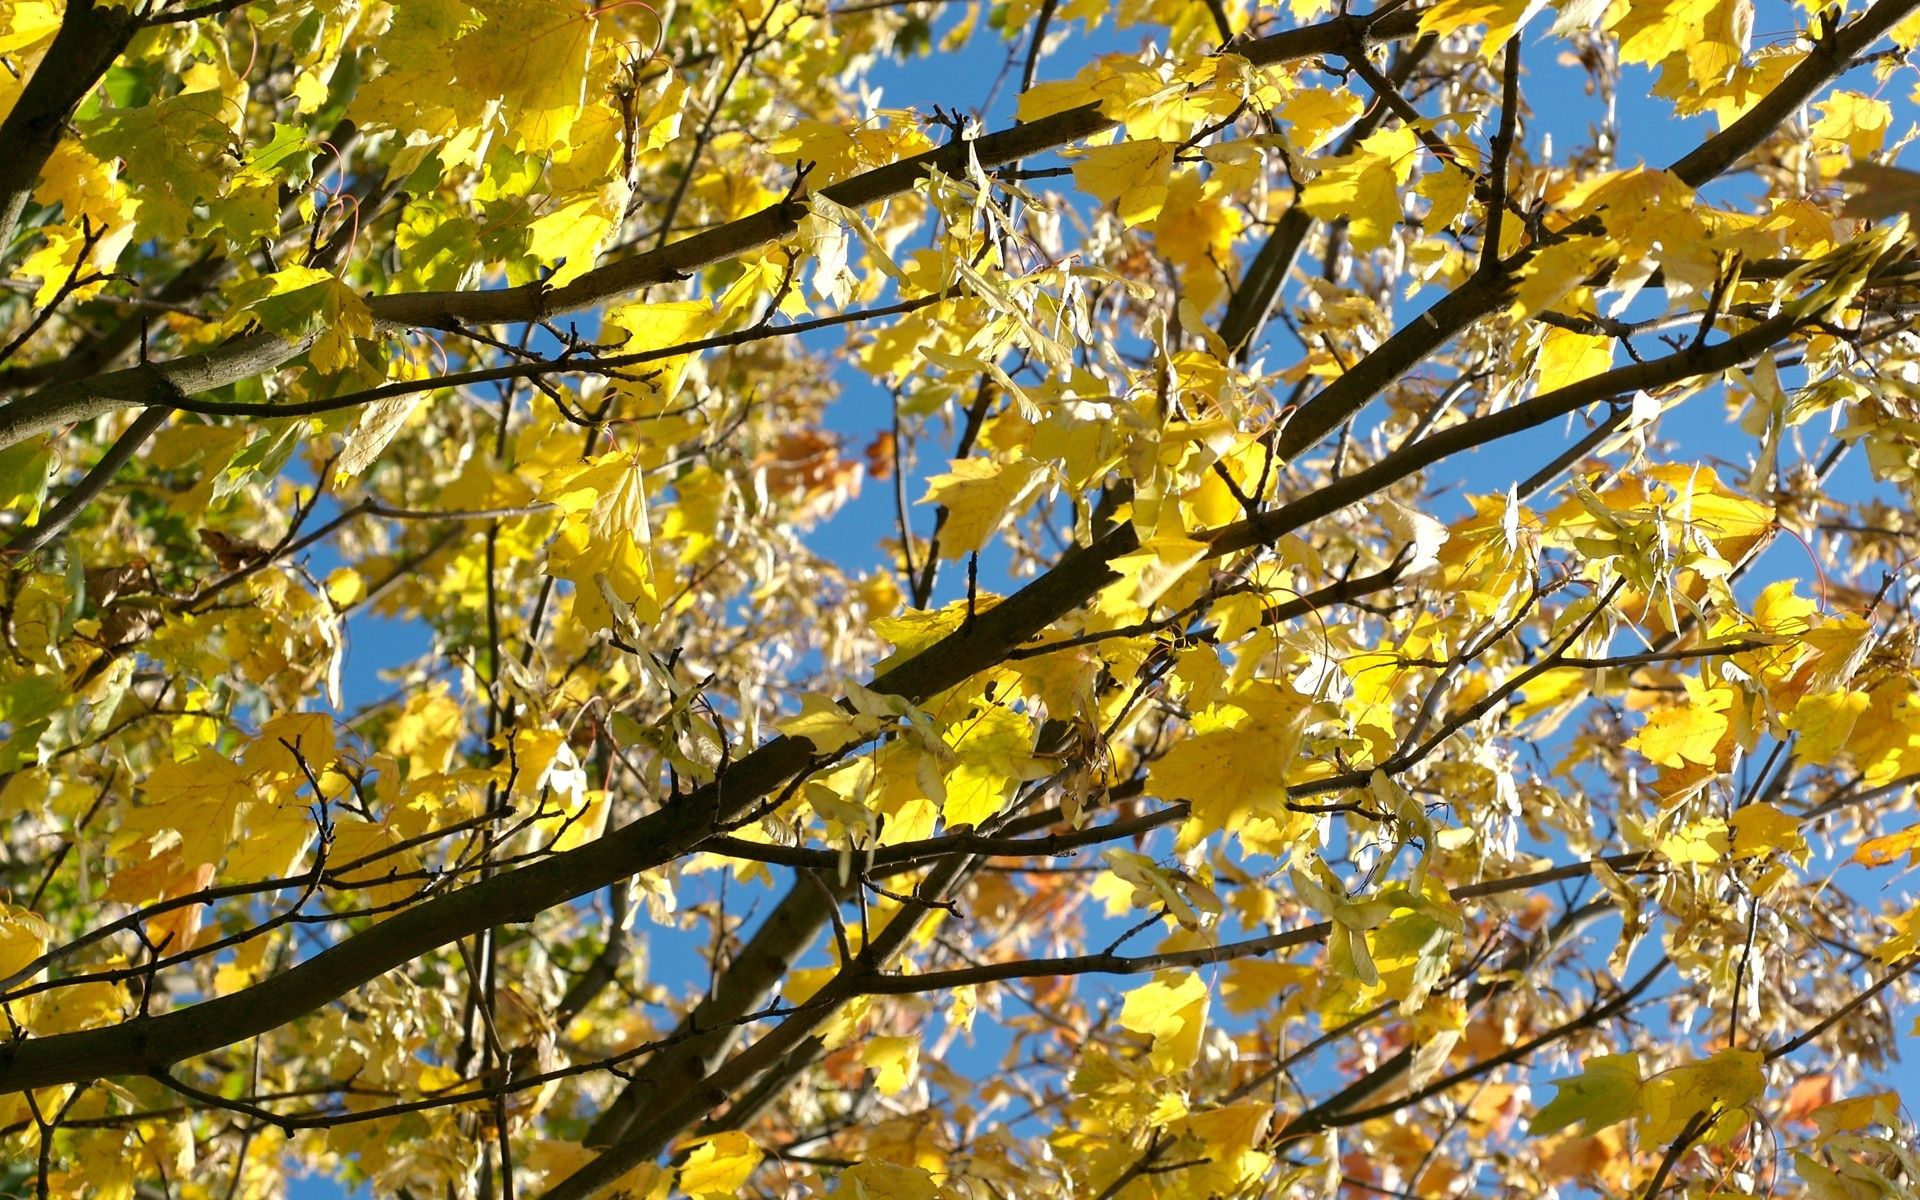 141129 download wallpaper Nature, Leaves, Autumn, Maple, Branches, Wood, Tree screensavers and pictures for free